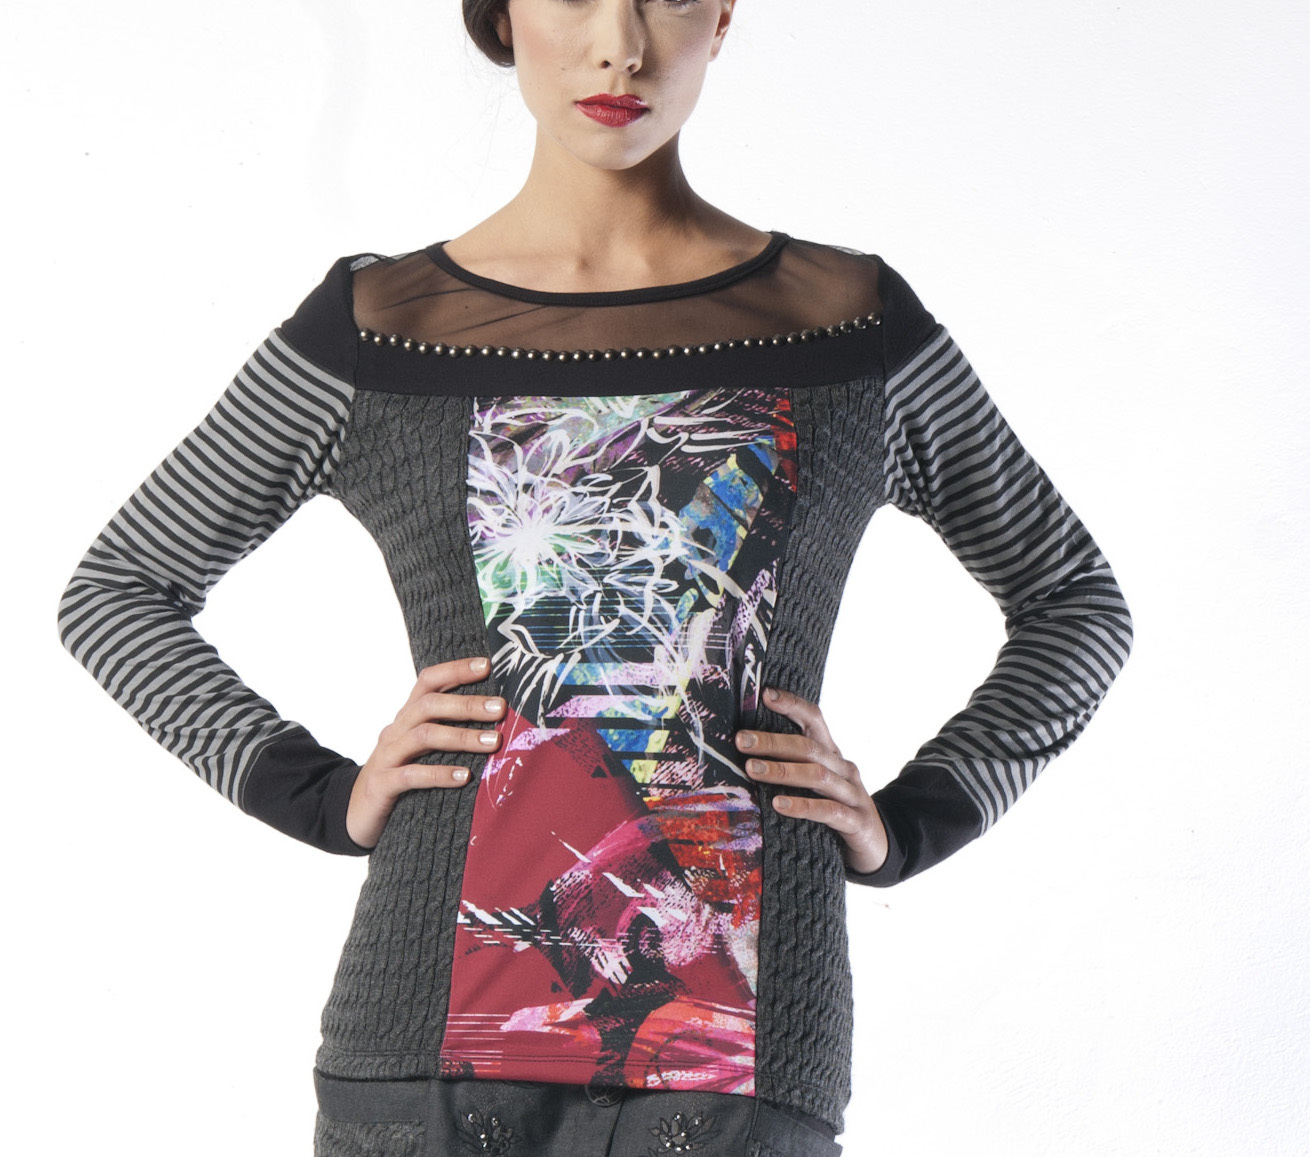 Les Fees Du Vent Couture: Color Intrigue Sweater (Almost Gone!) LFDV_887406_N